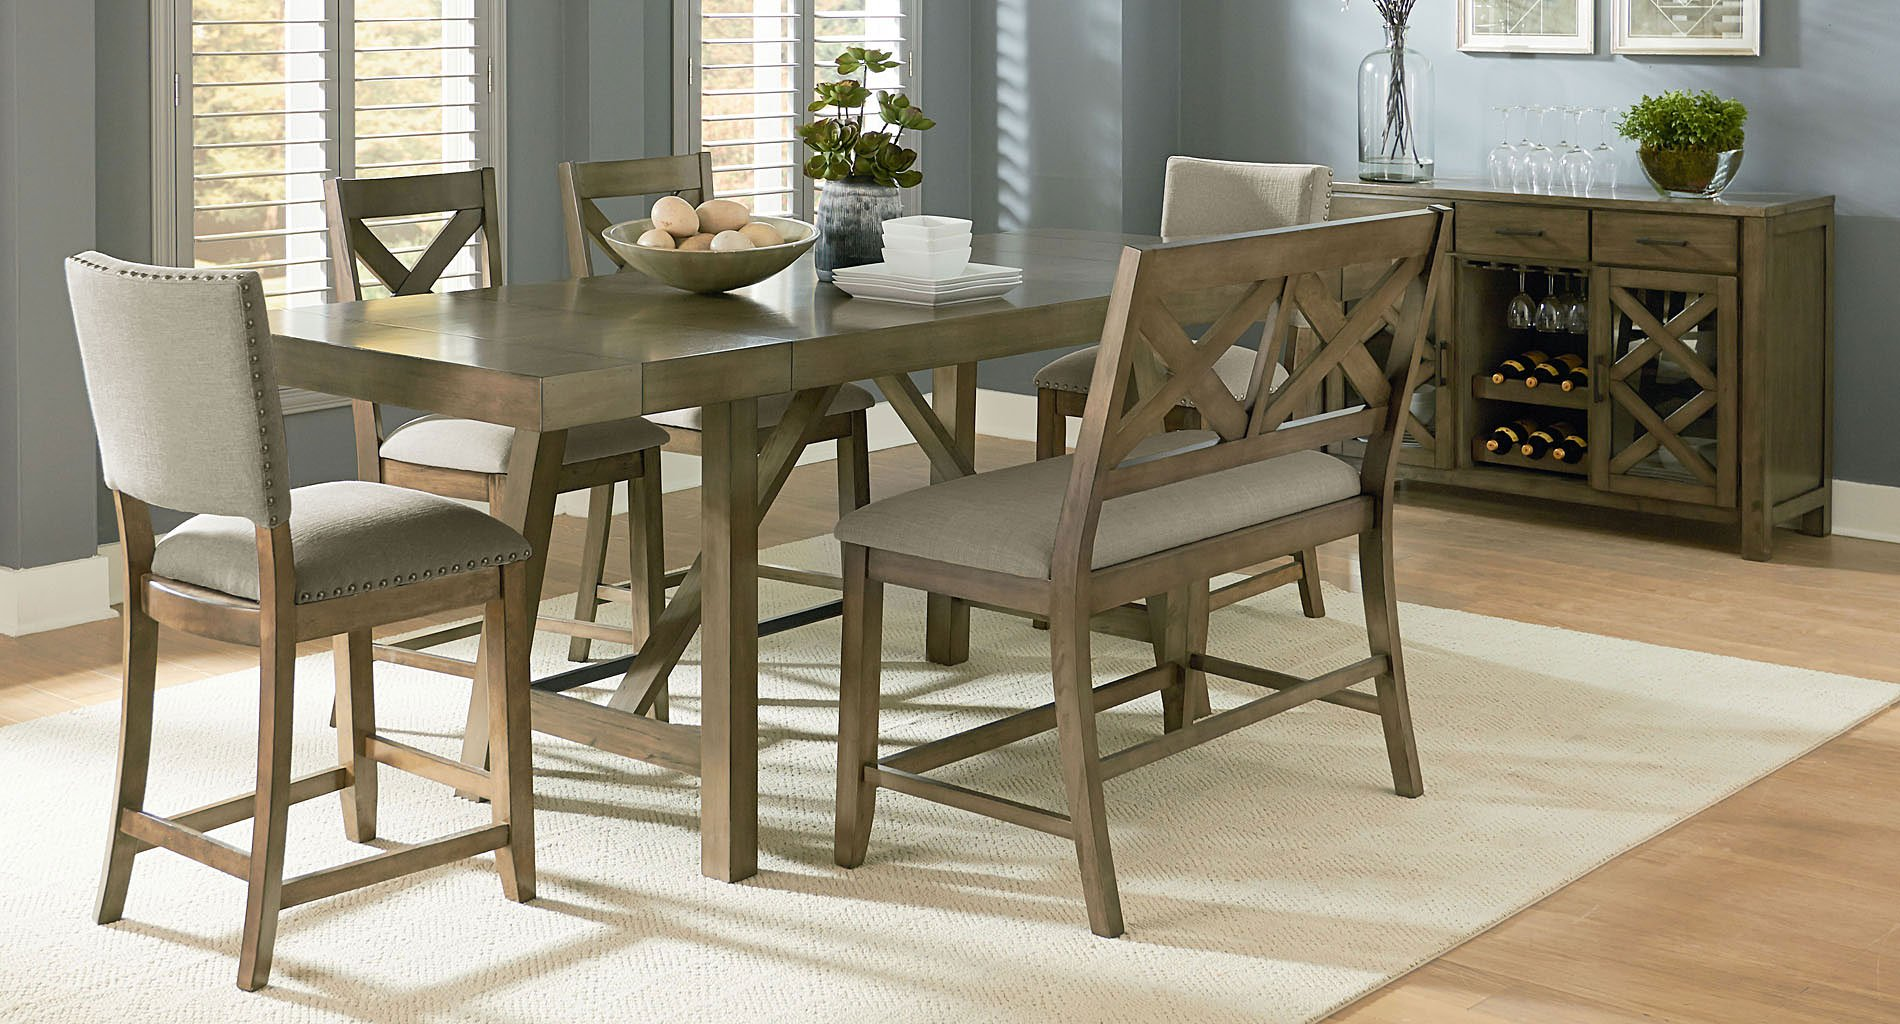 omaha counter height dining set w xback bench grey